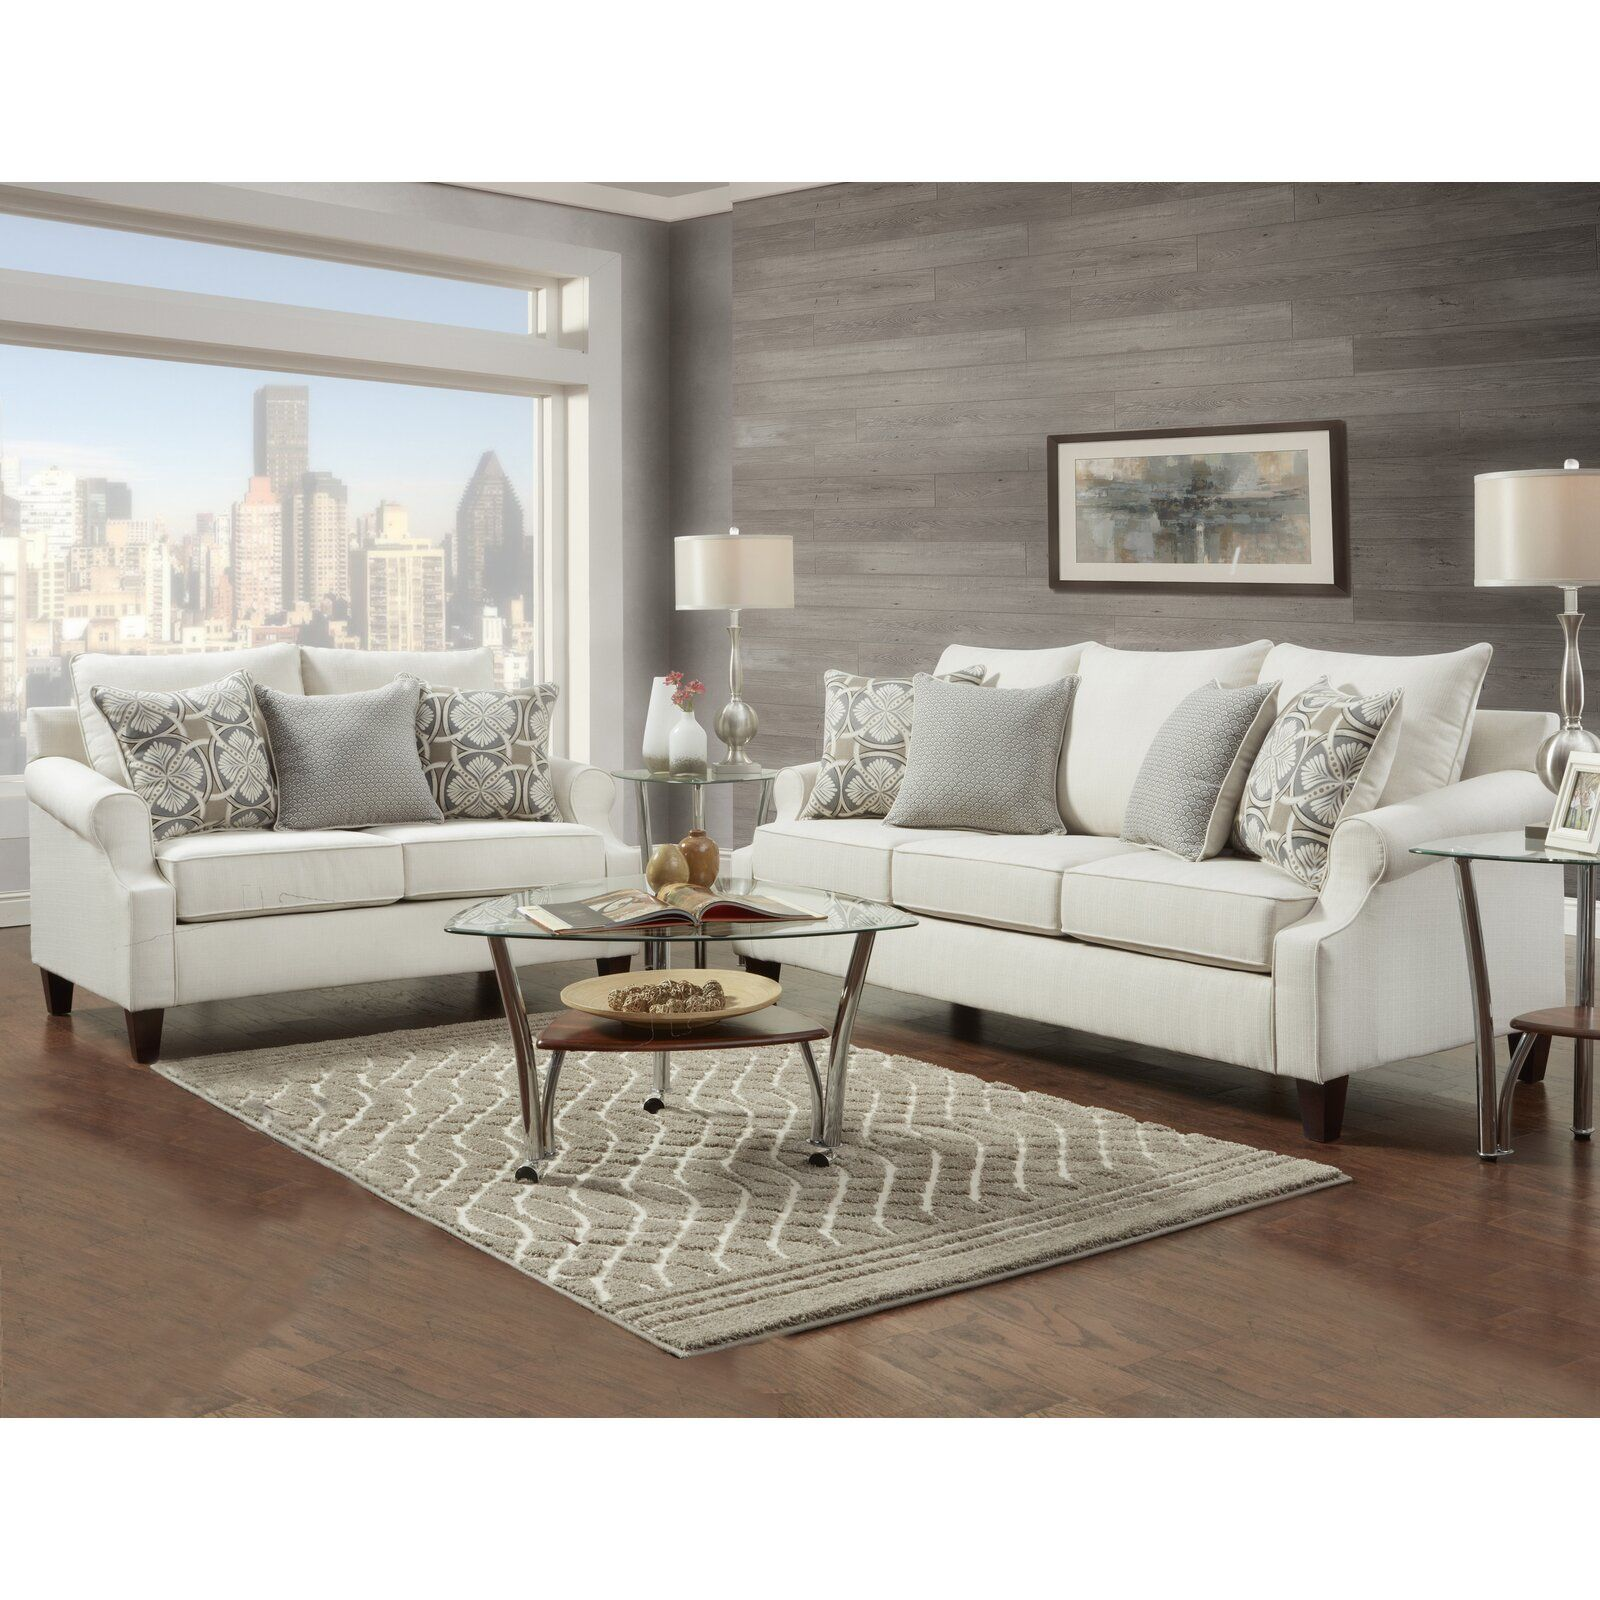 Best Red Barrel Studio Verdugo 2 Piece Living Room Set Cheap 400 x 300